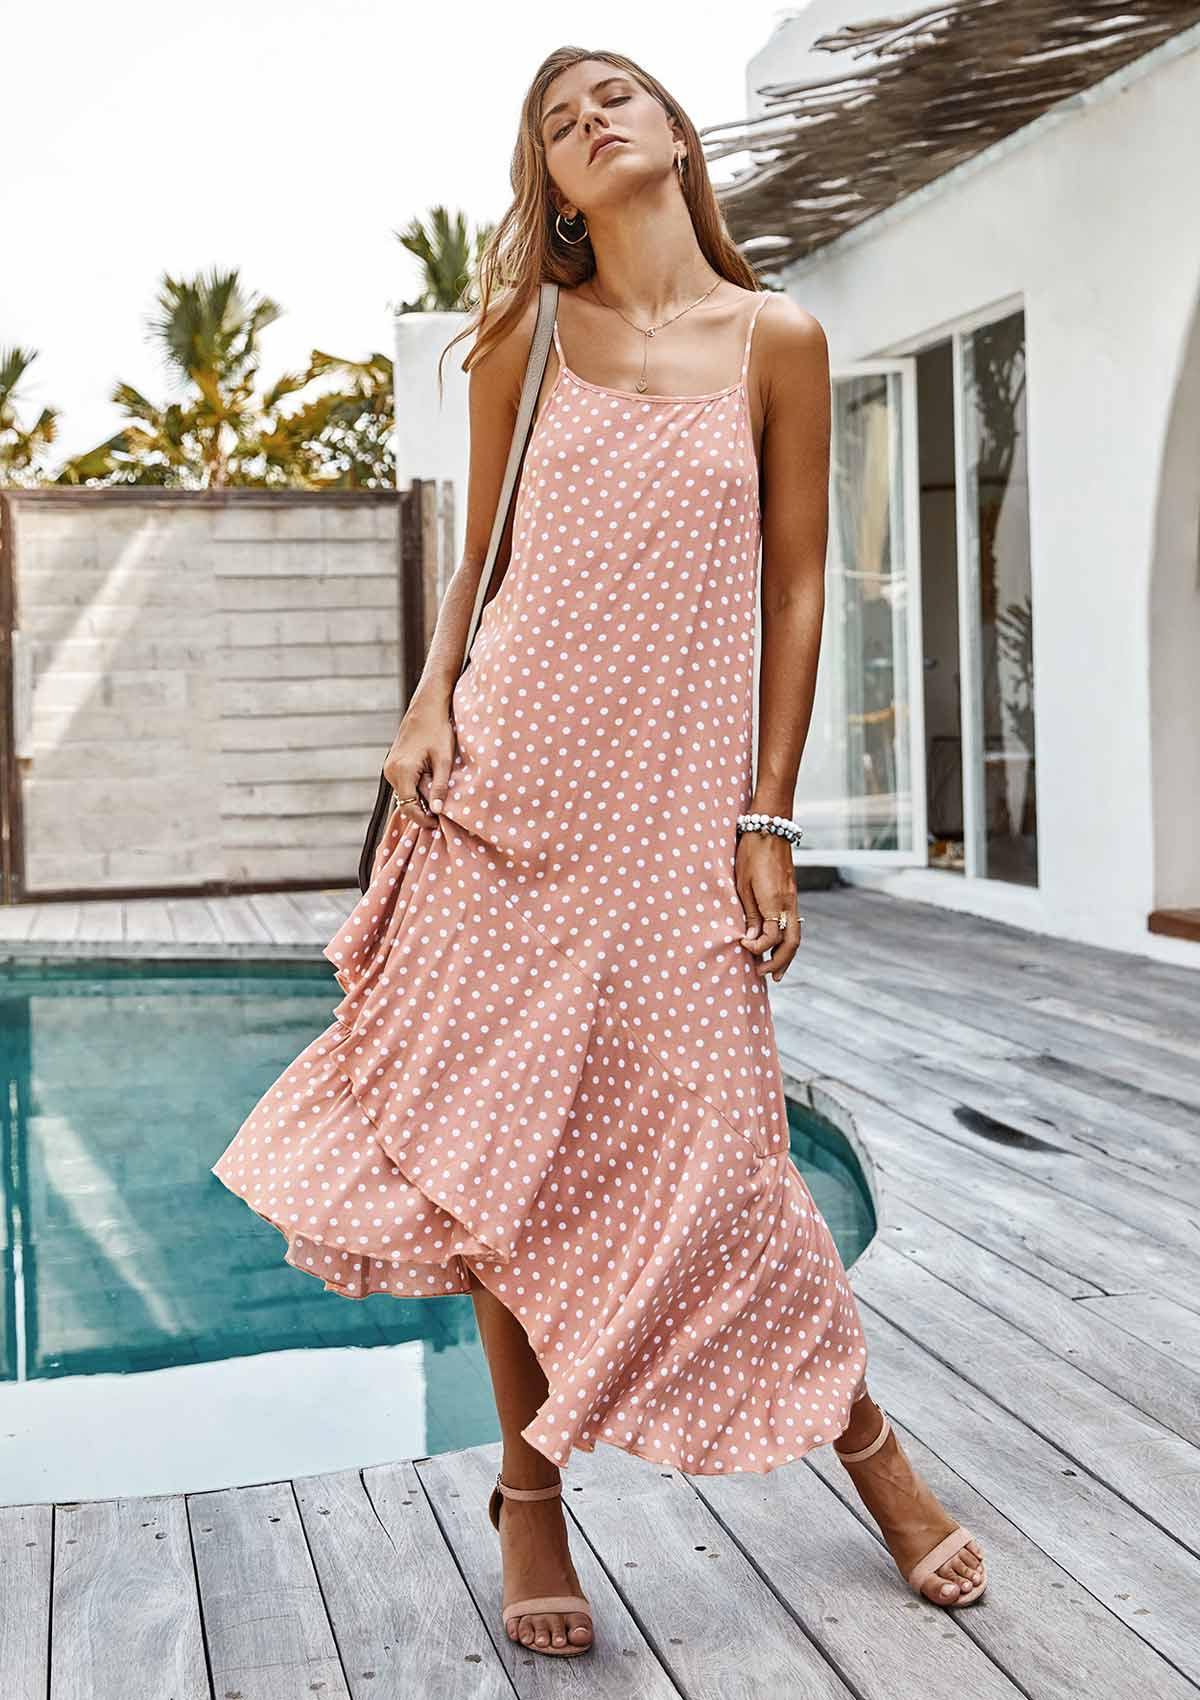 Irregular Polka Dot Boho Dress